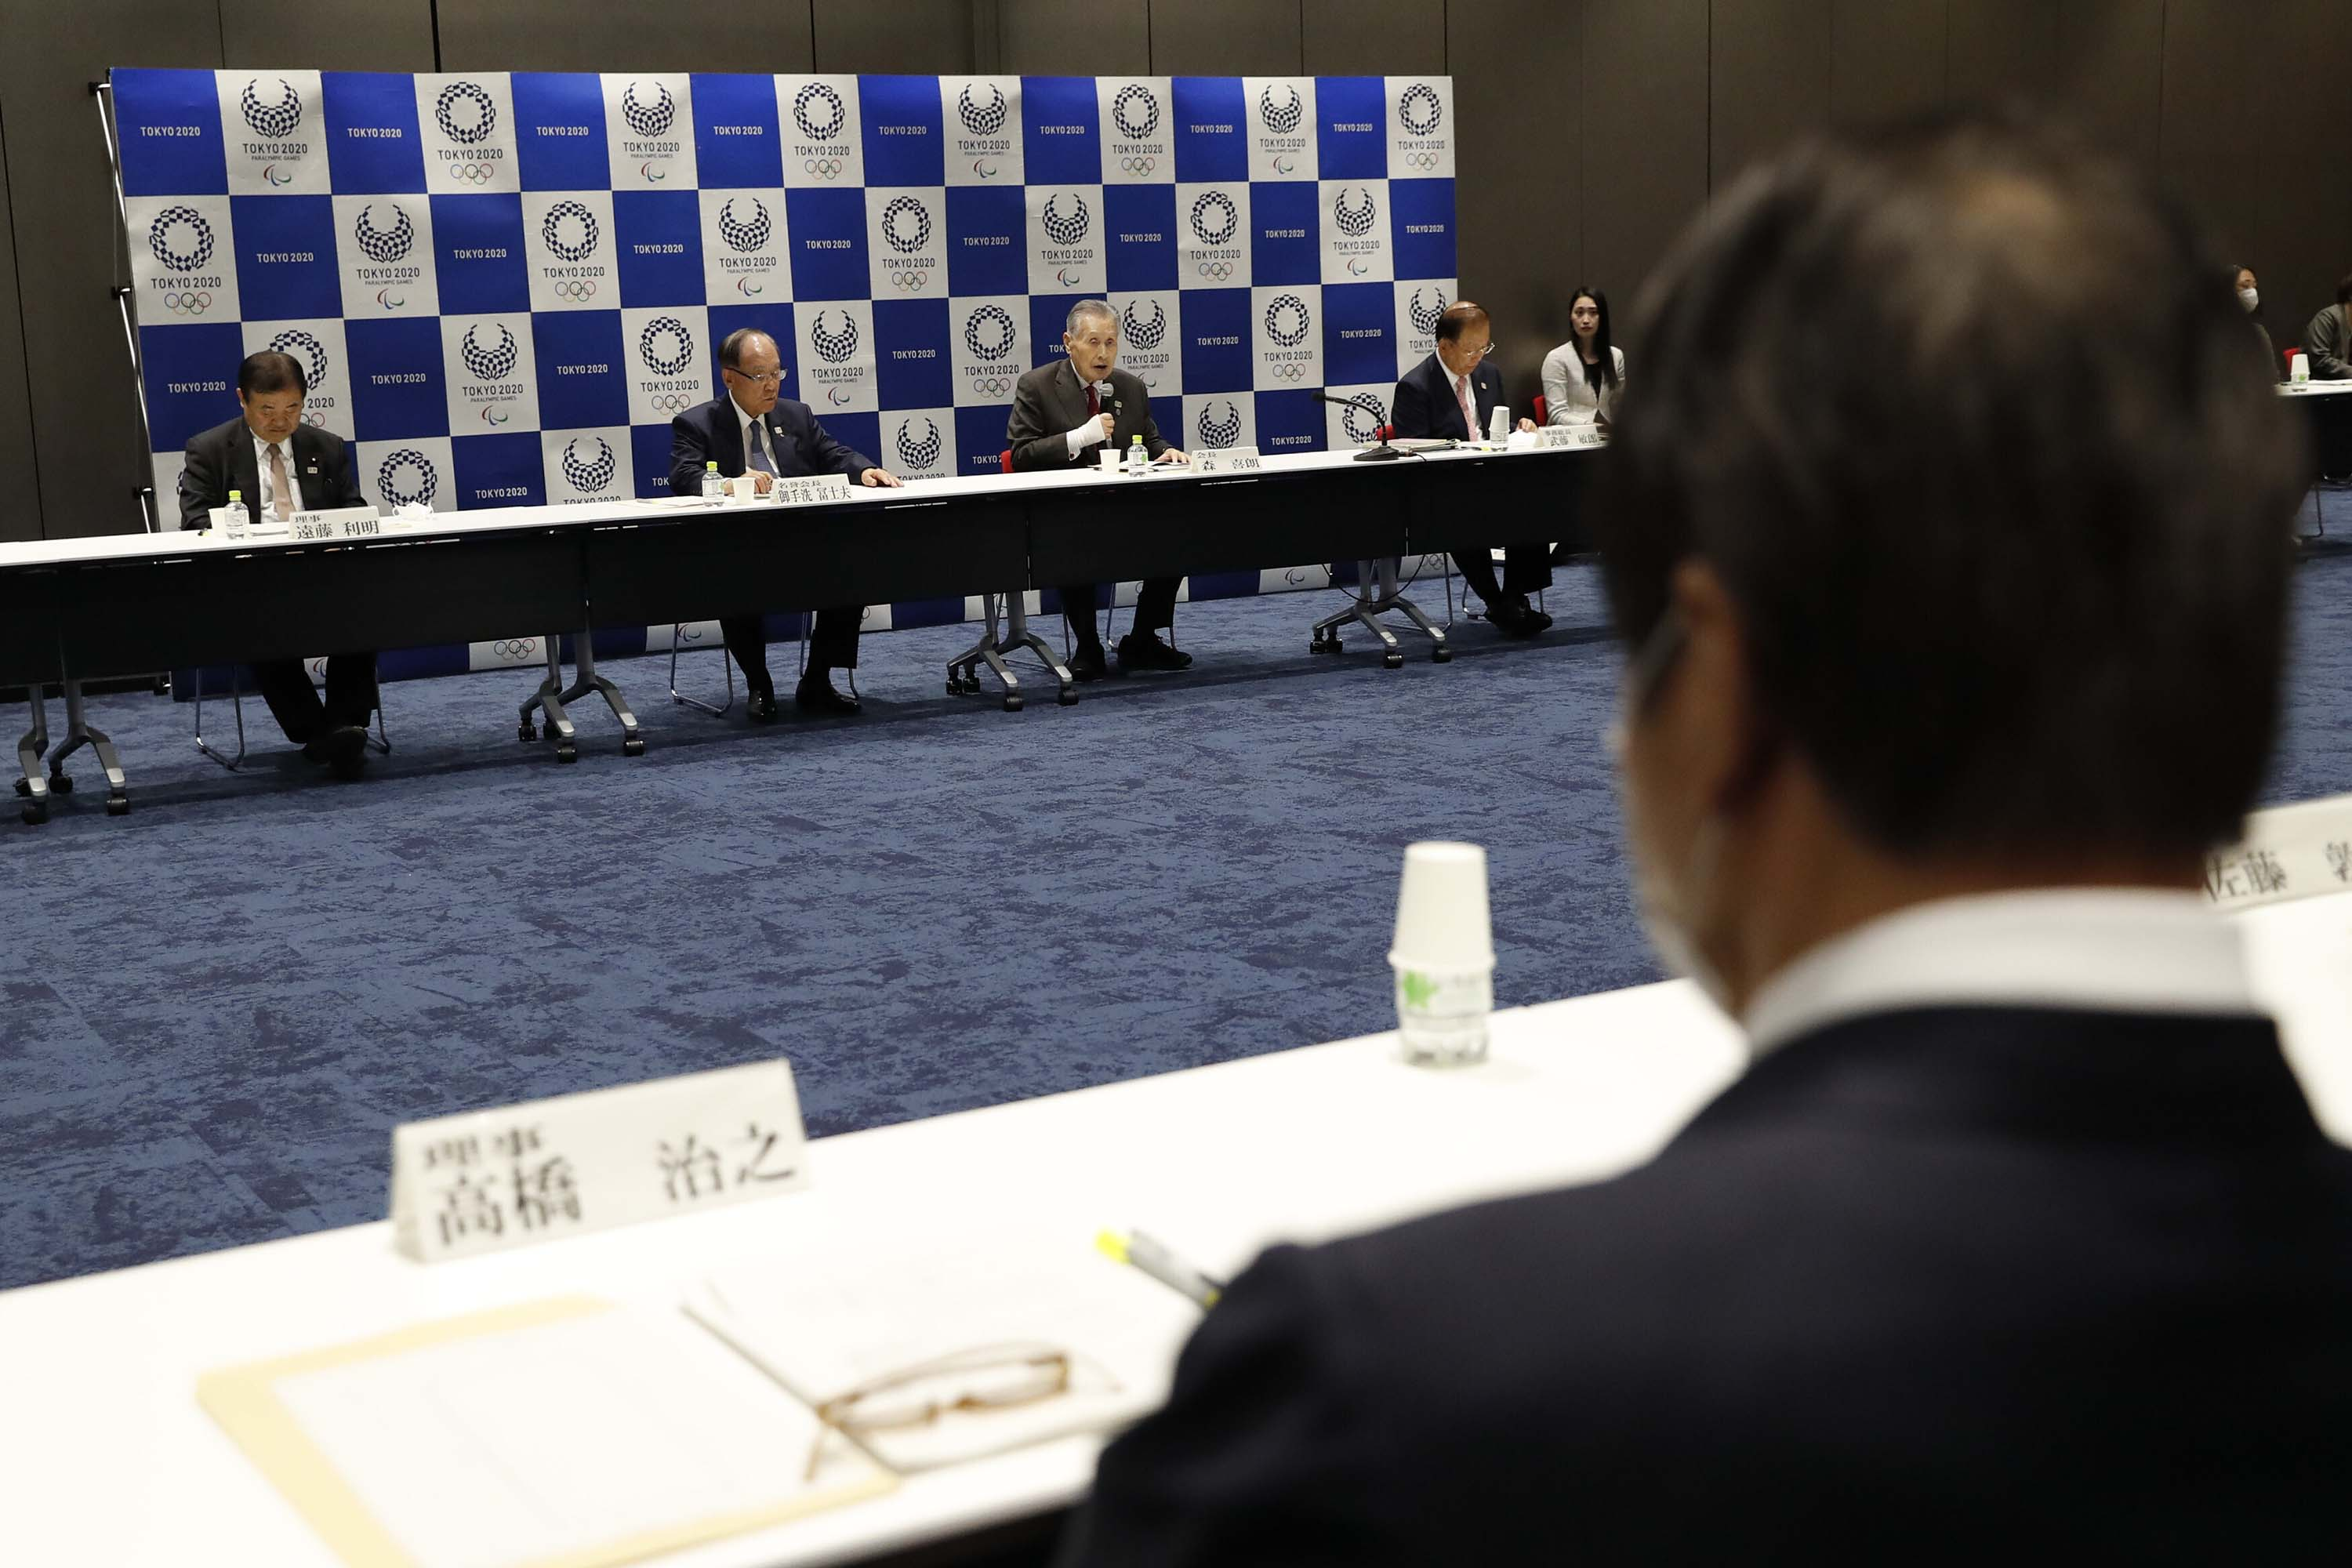 Tokyo 2020 organization committee president Yoshiro Mori, center, speaks during the Executive Board Meeting in Tokyo, Japan, on March 30.